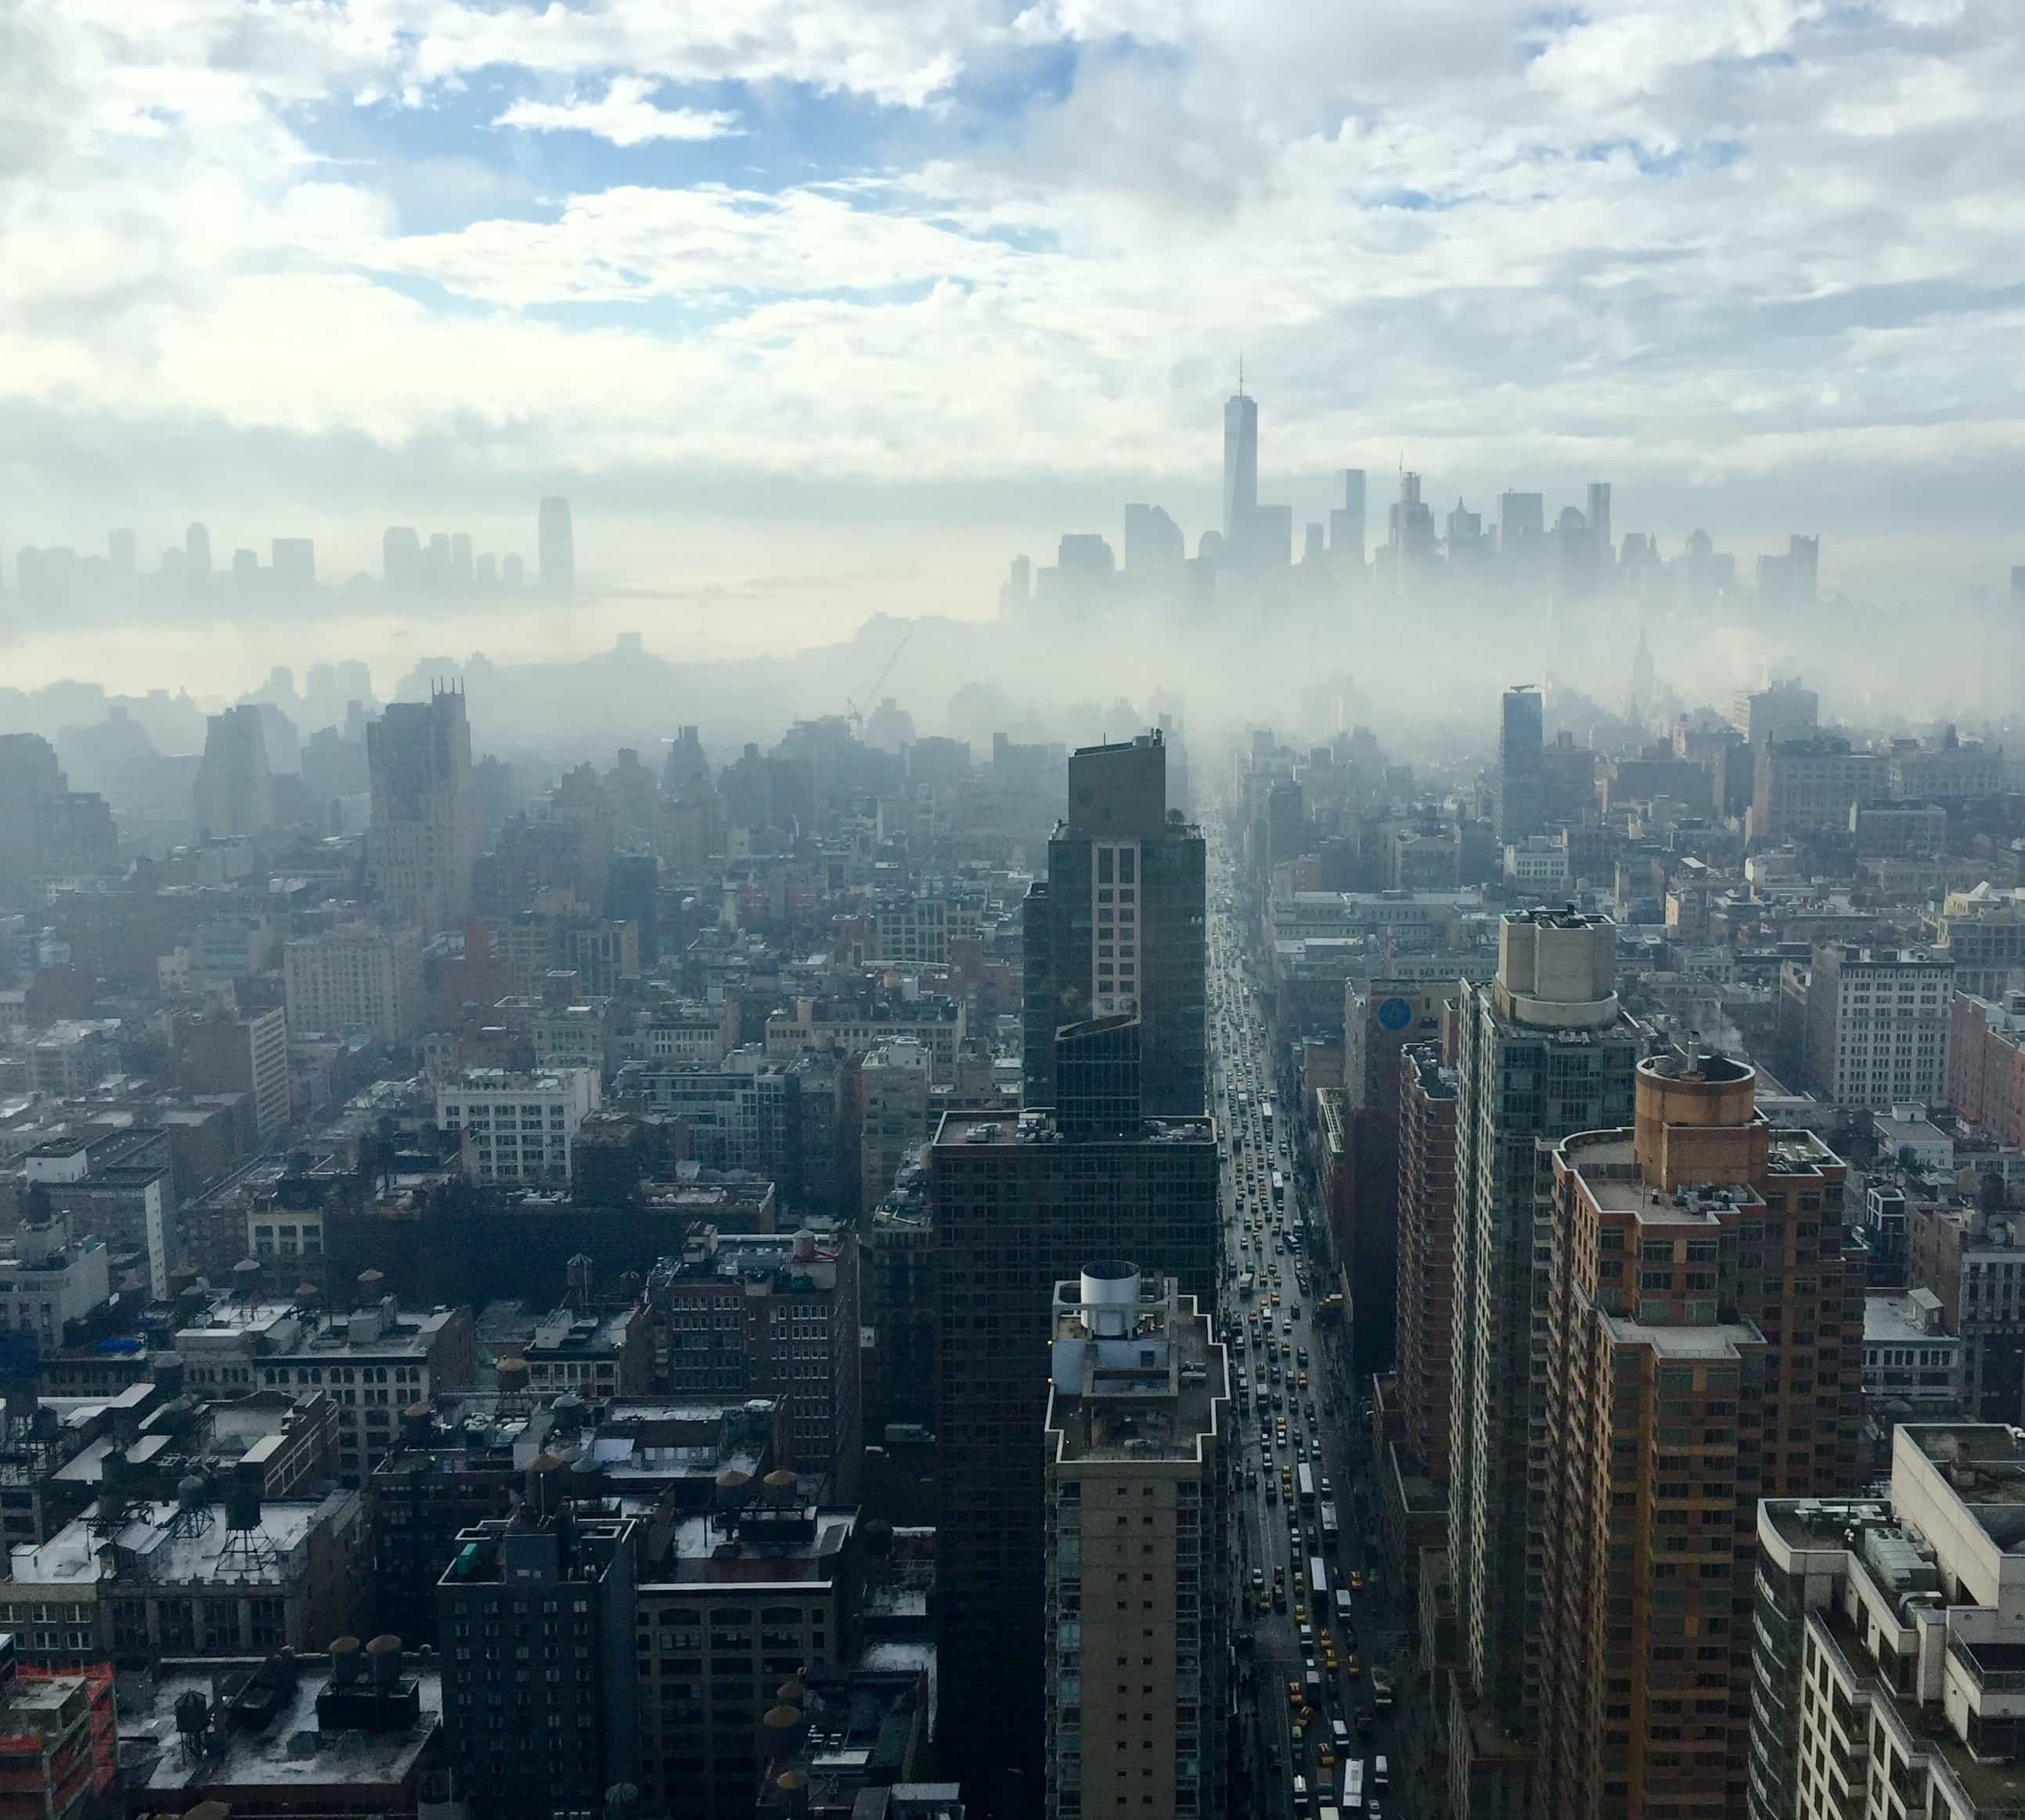 Free Picture City Cityscape Downtown Smog Mist